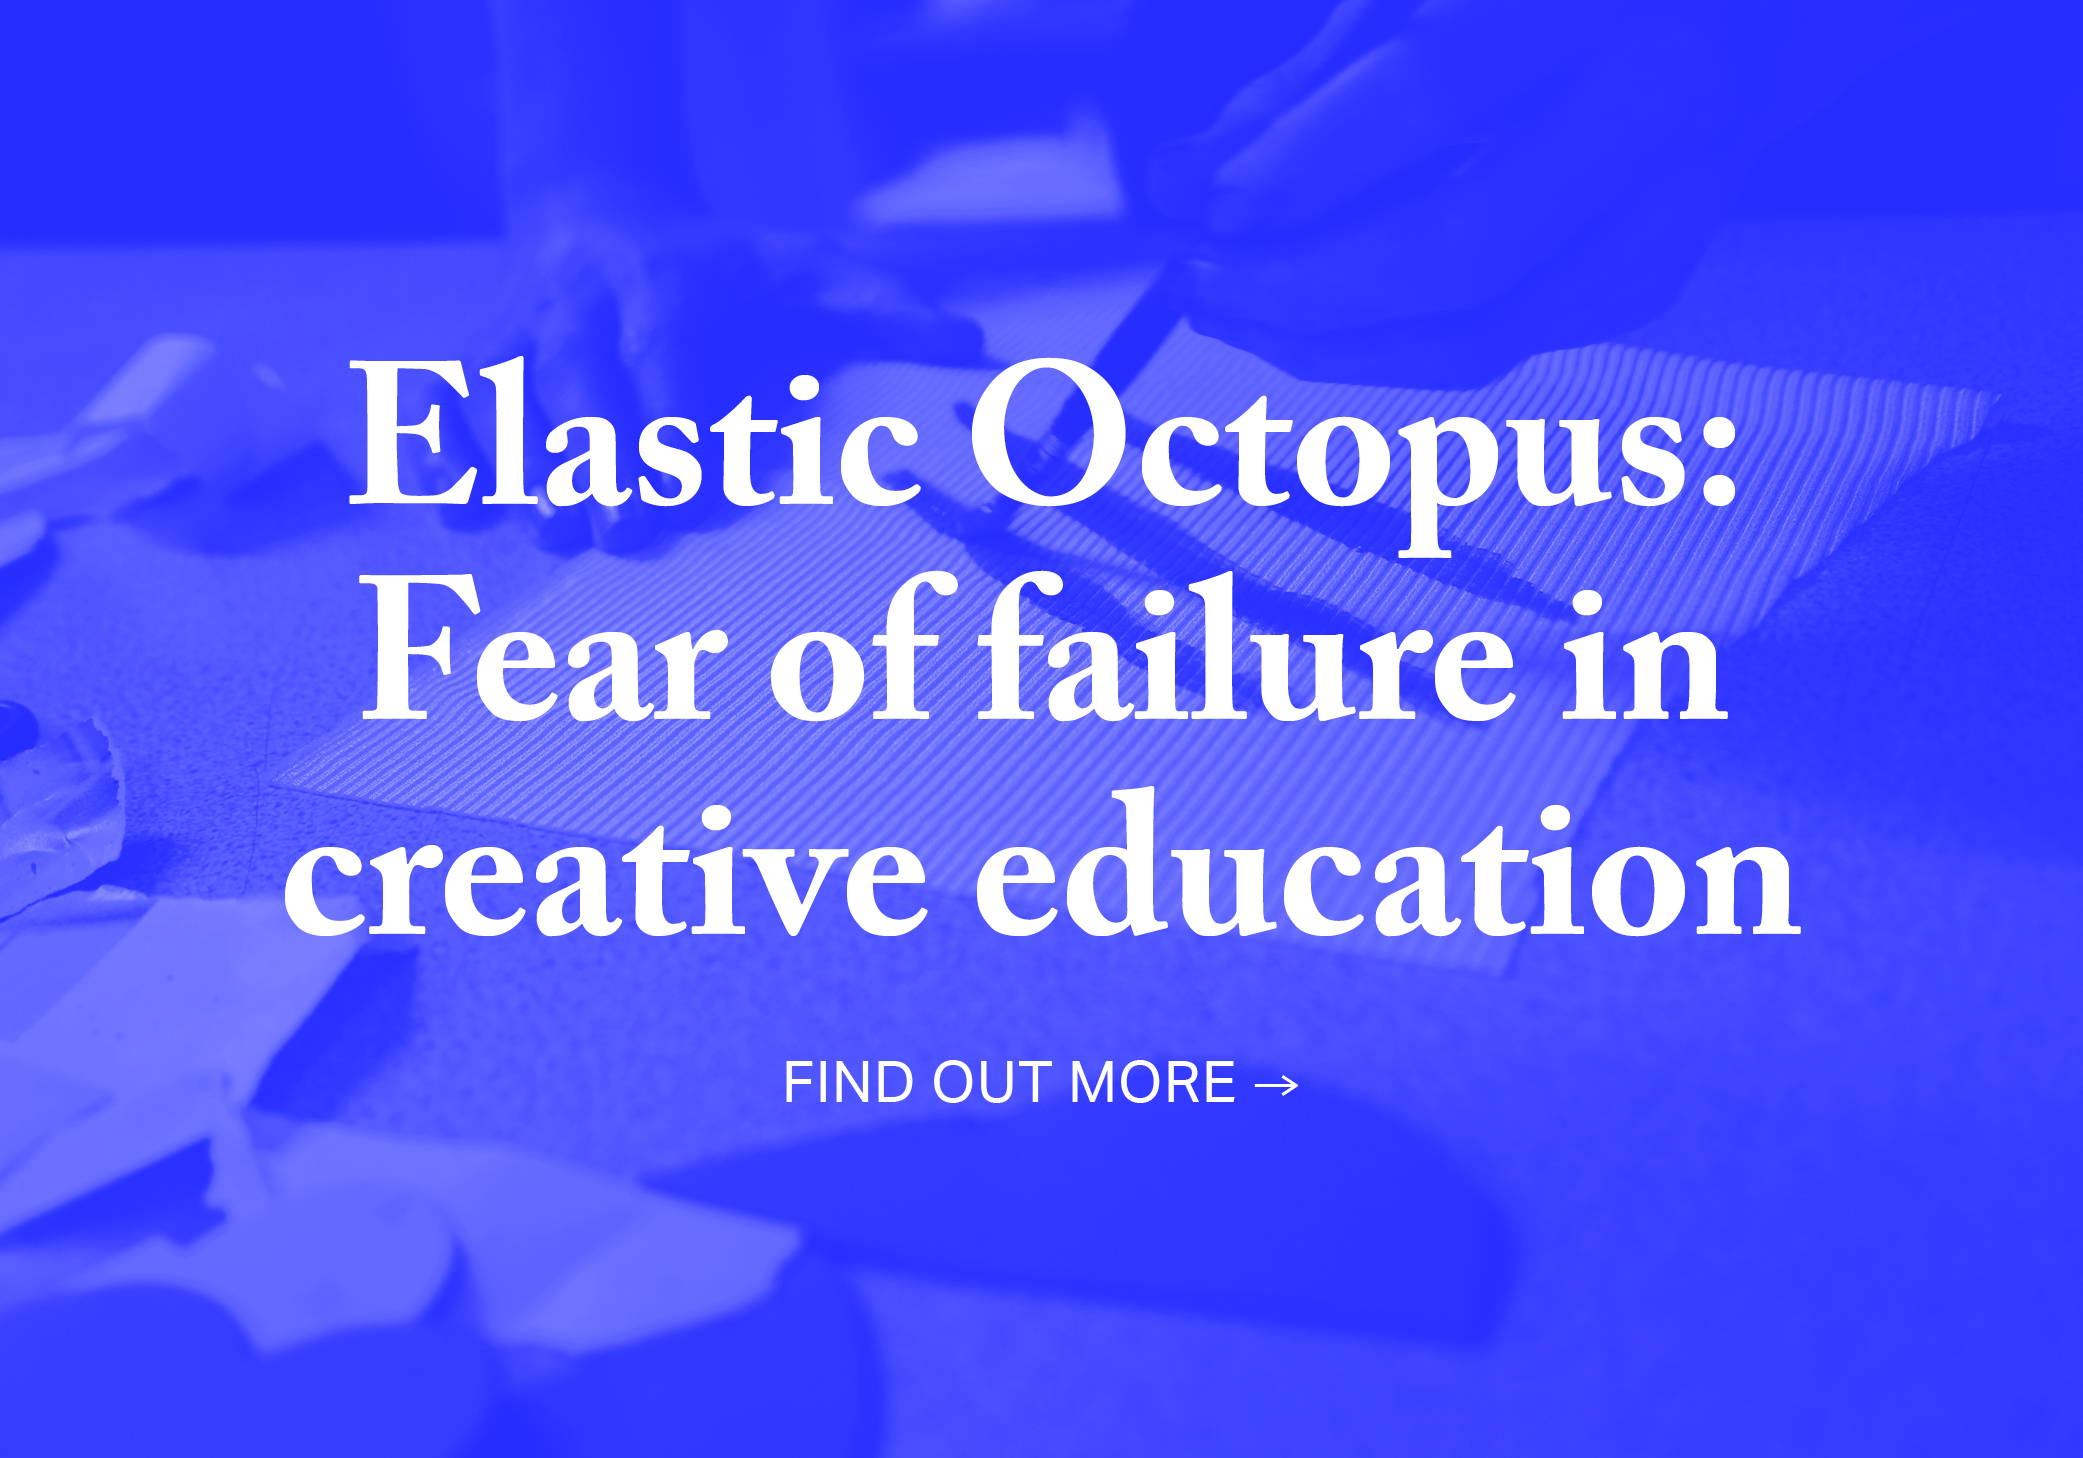 research_elastic_octopus.jpg